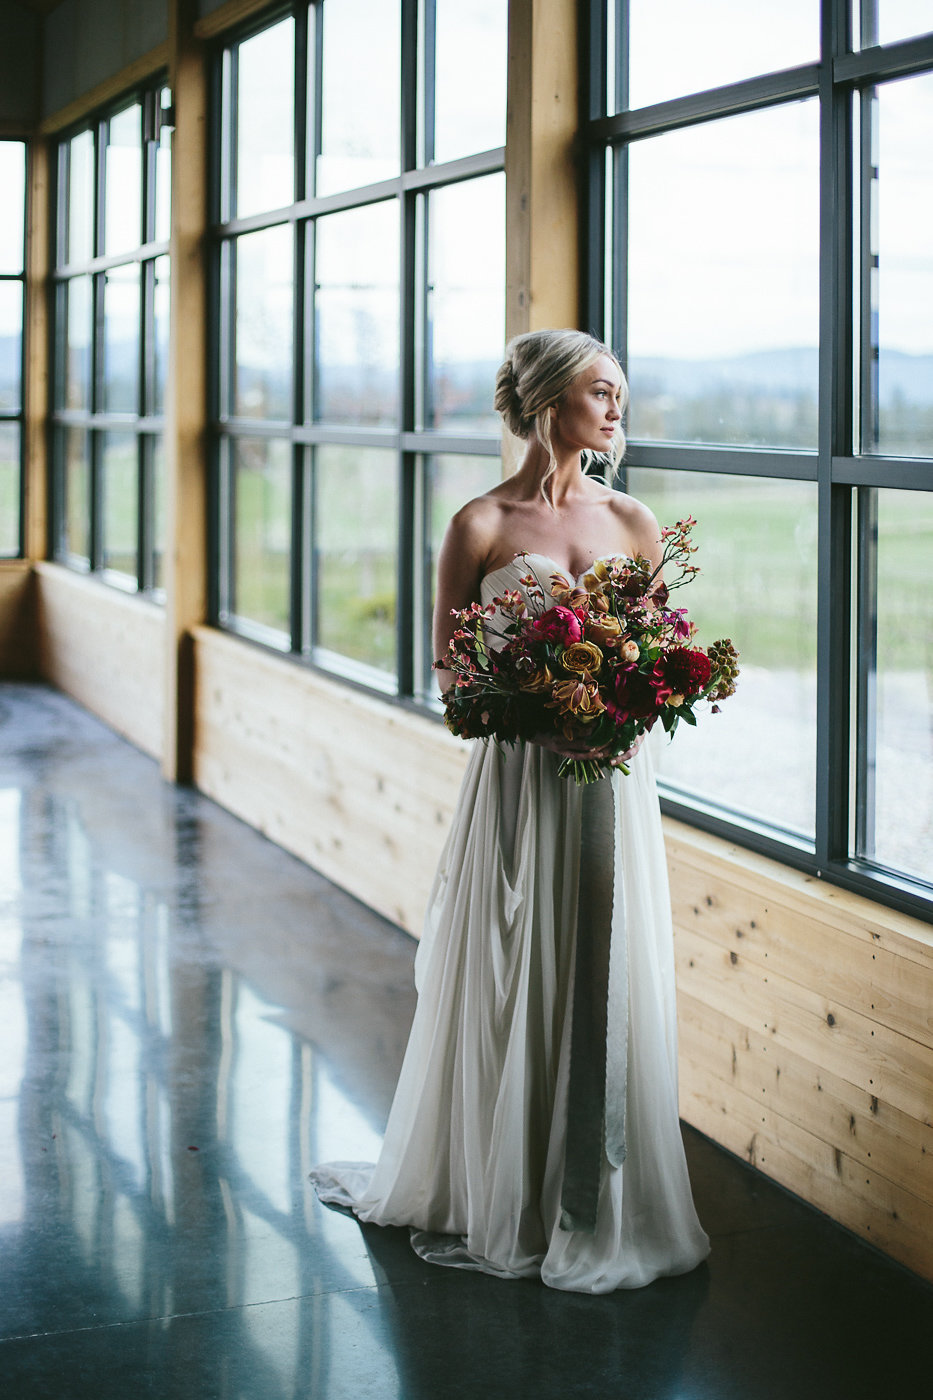 Rich Toned Industrial Wedding Inspiration - photo by Hannah Victoria Photography https://ruffledblog.com/rich-toned-industrial-wedding-inspiration